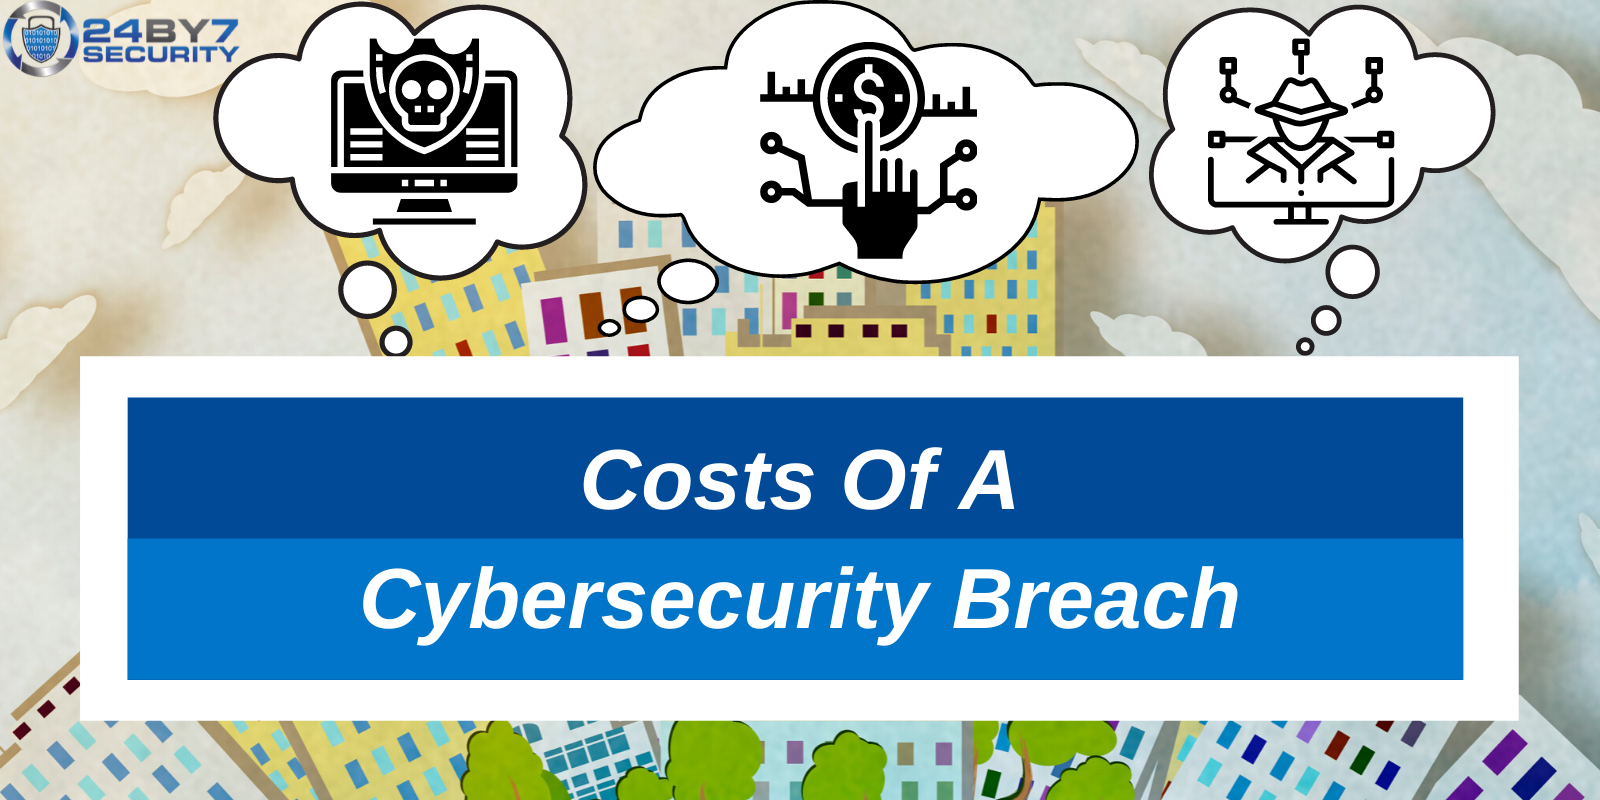 Just how much are you losing? Costs of a Cybersecurity breach